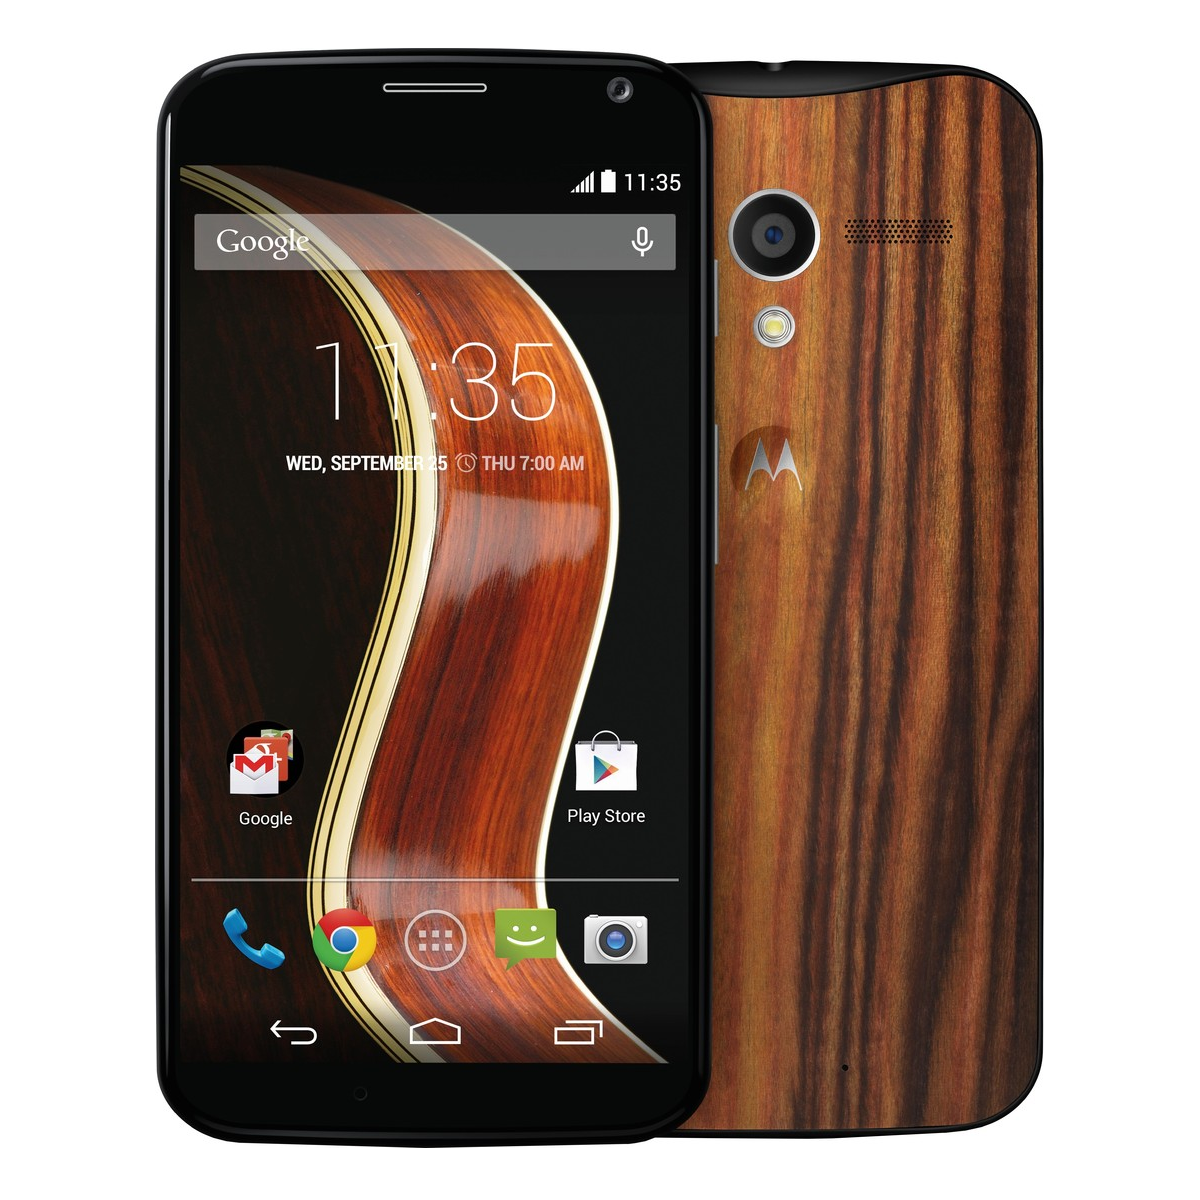 Motorola Moto X WiFi GPS Android 4G LTE Phone Sprint in Black with Wood Back Panel